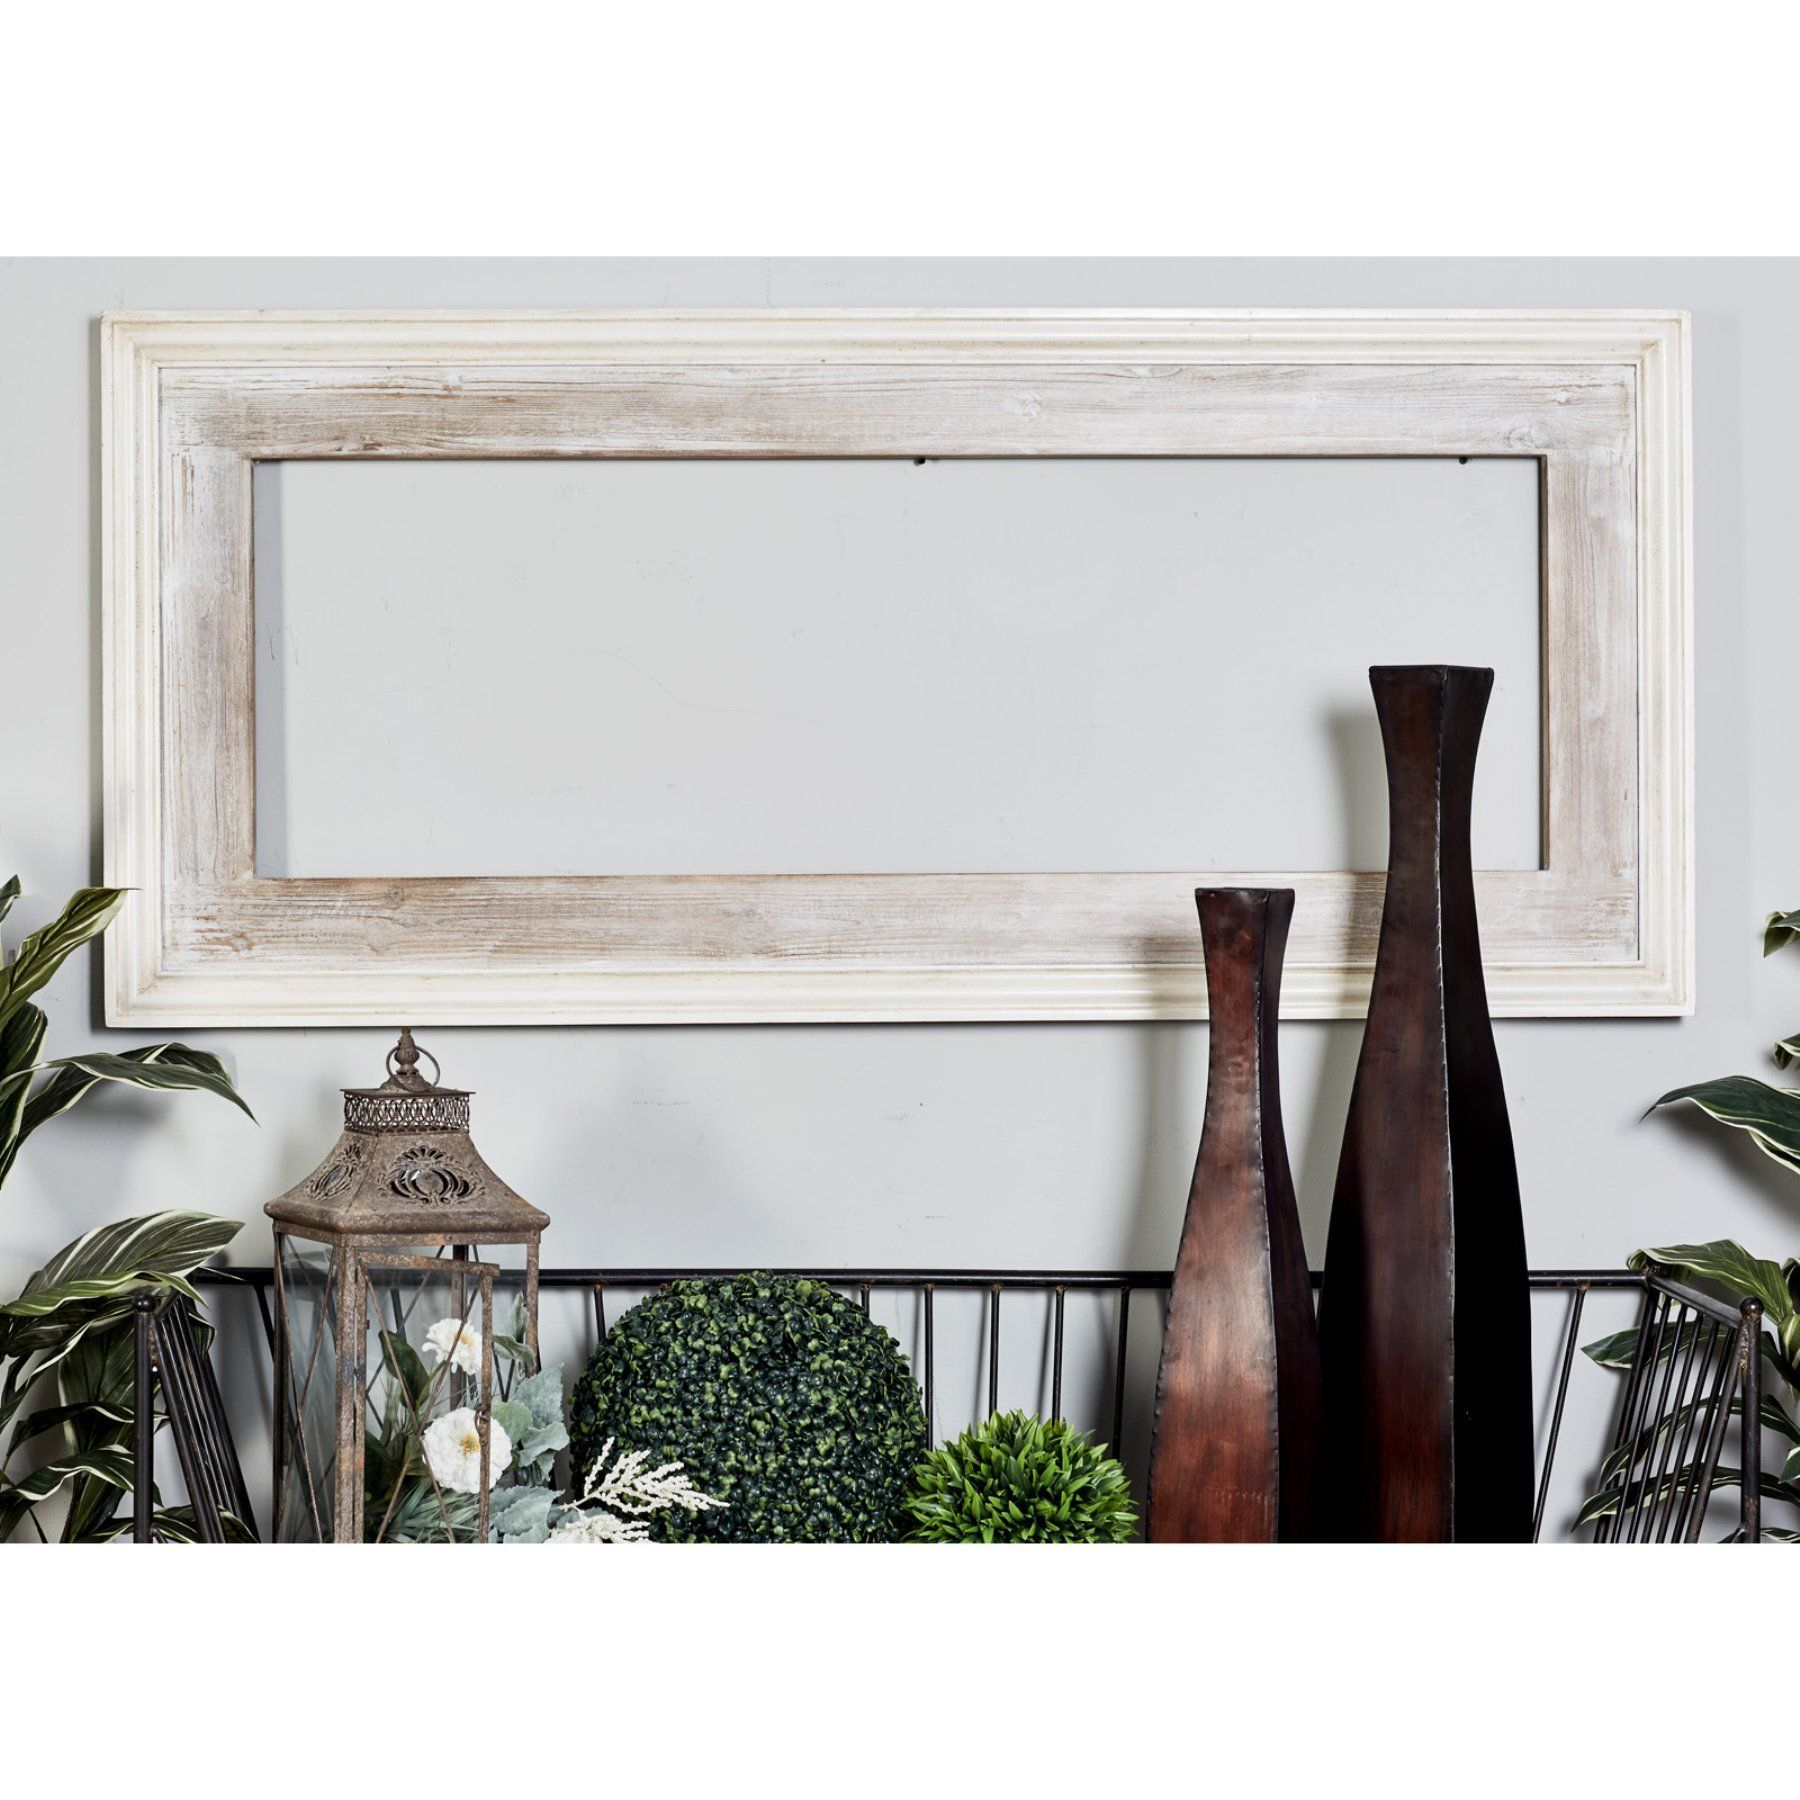 Decmode Wooden Rectangular Beveled Wall Mirror – 30W X 67H Within 2 Piece Priscilla Square Traditional Beveled Distressed Accent Mirror Sets (View 15 of 20)